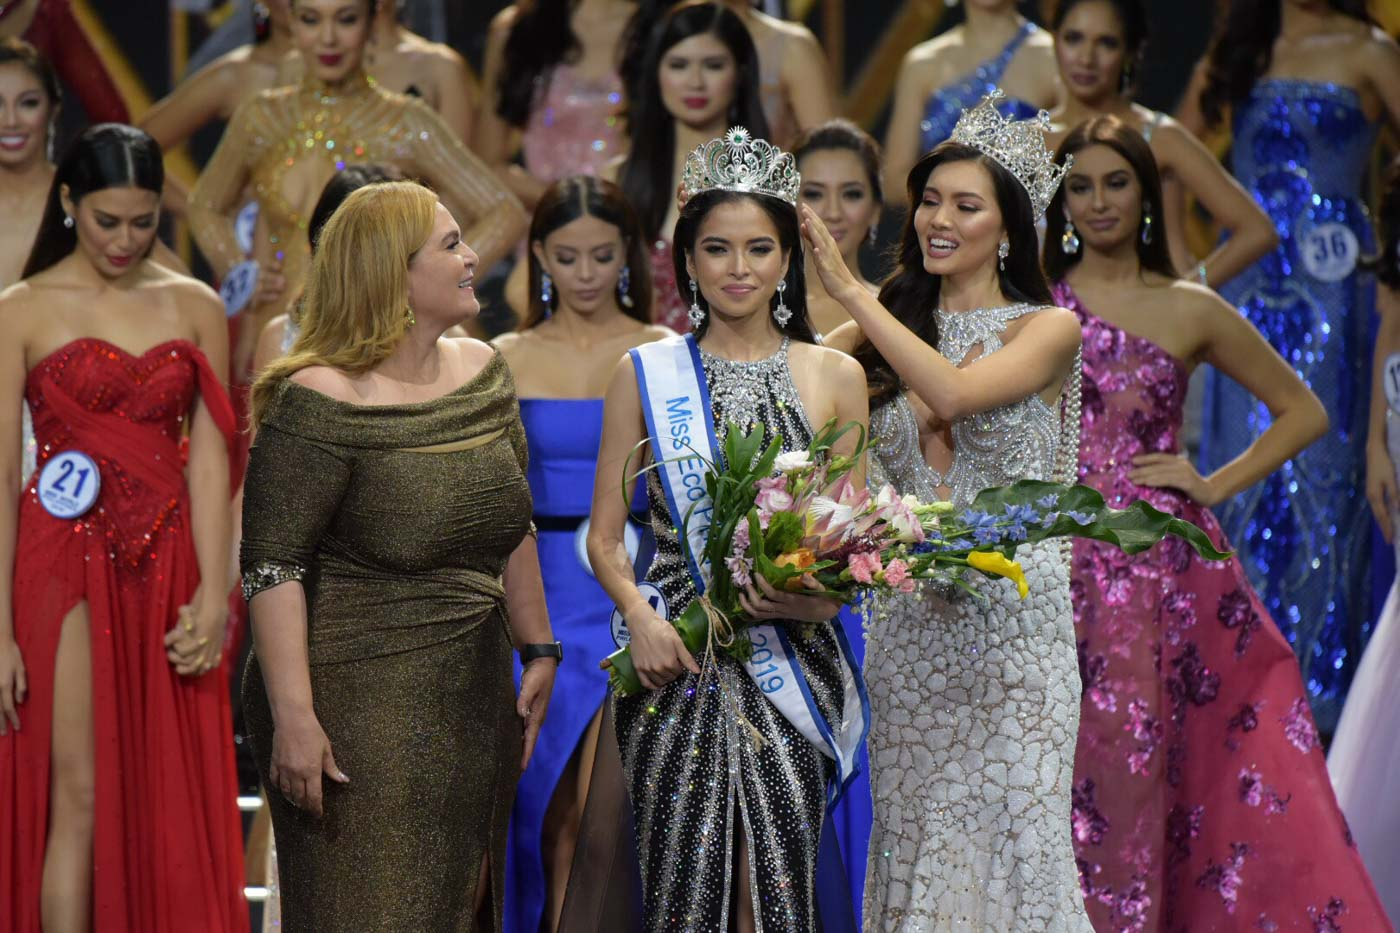 Kelley is crowned by Miss Eco Philippines 2018 Maureen Montagne and Miss Eco International CEO Dr. Amal Rezk. Photo by Alecs Ongcal/Rappler